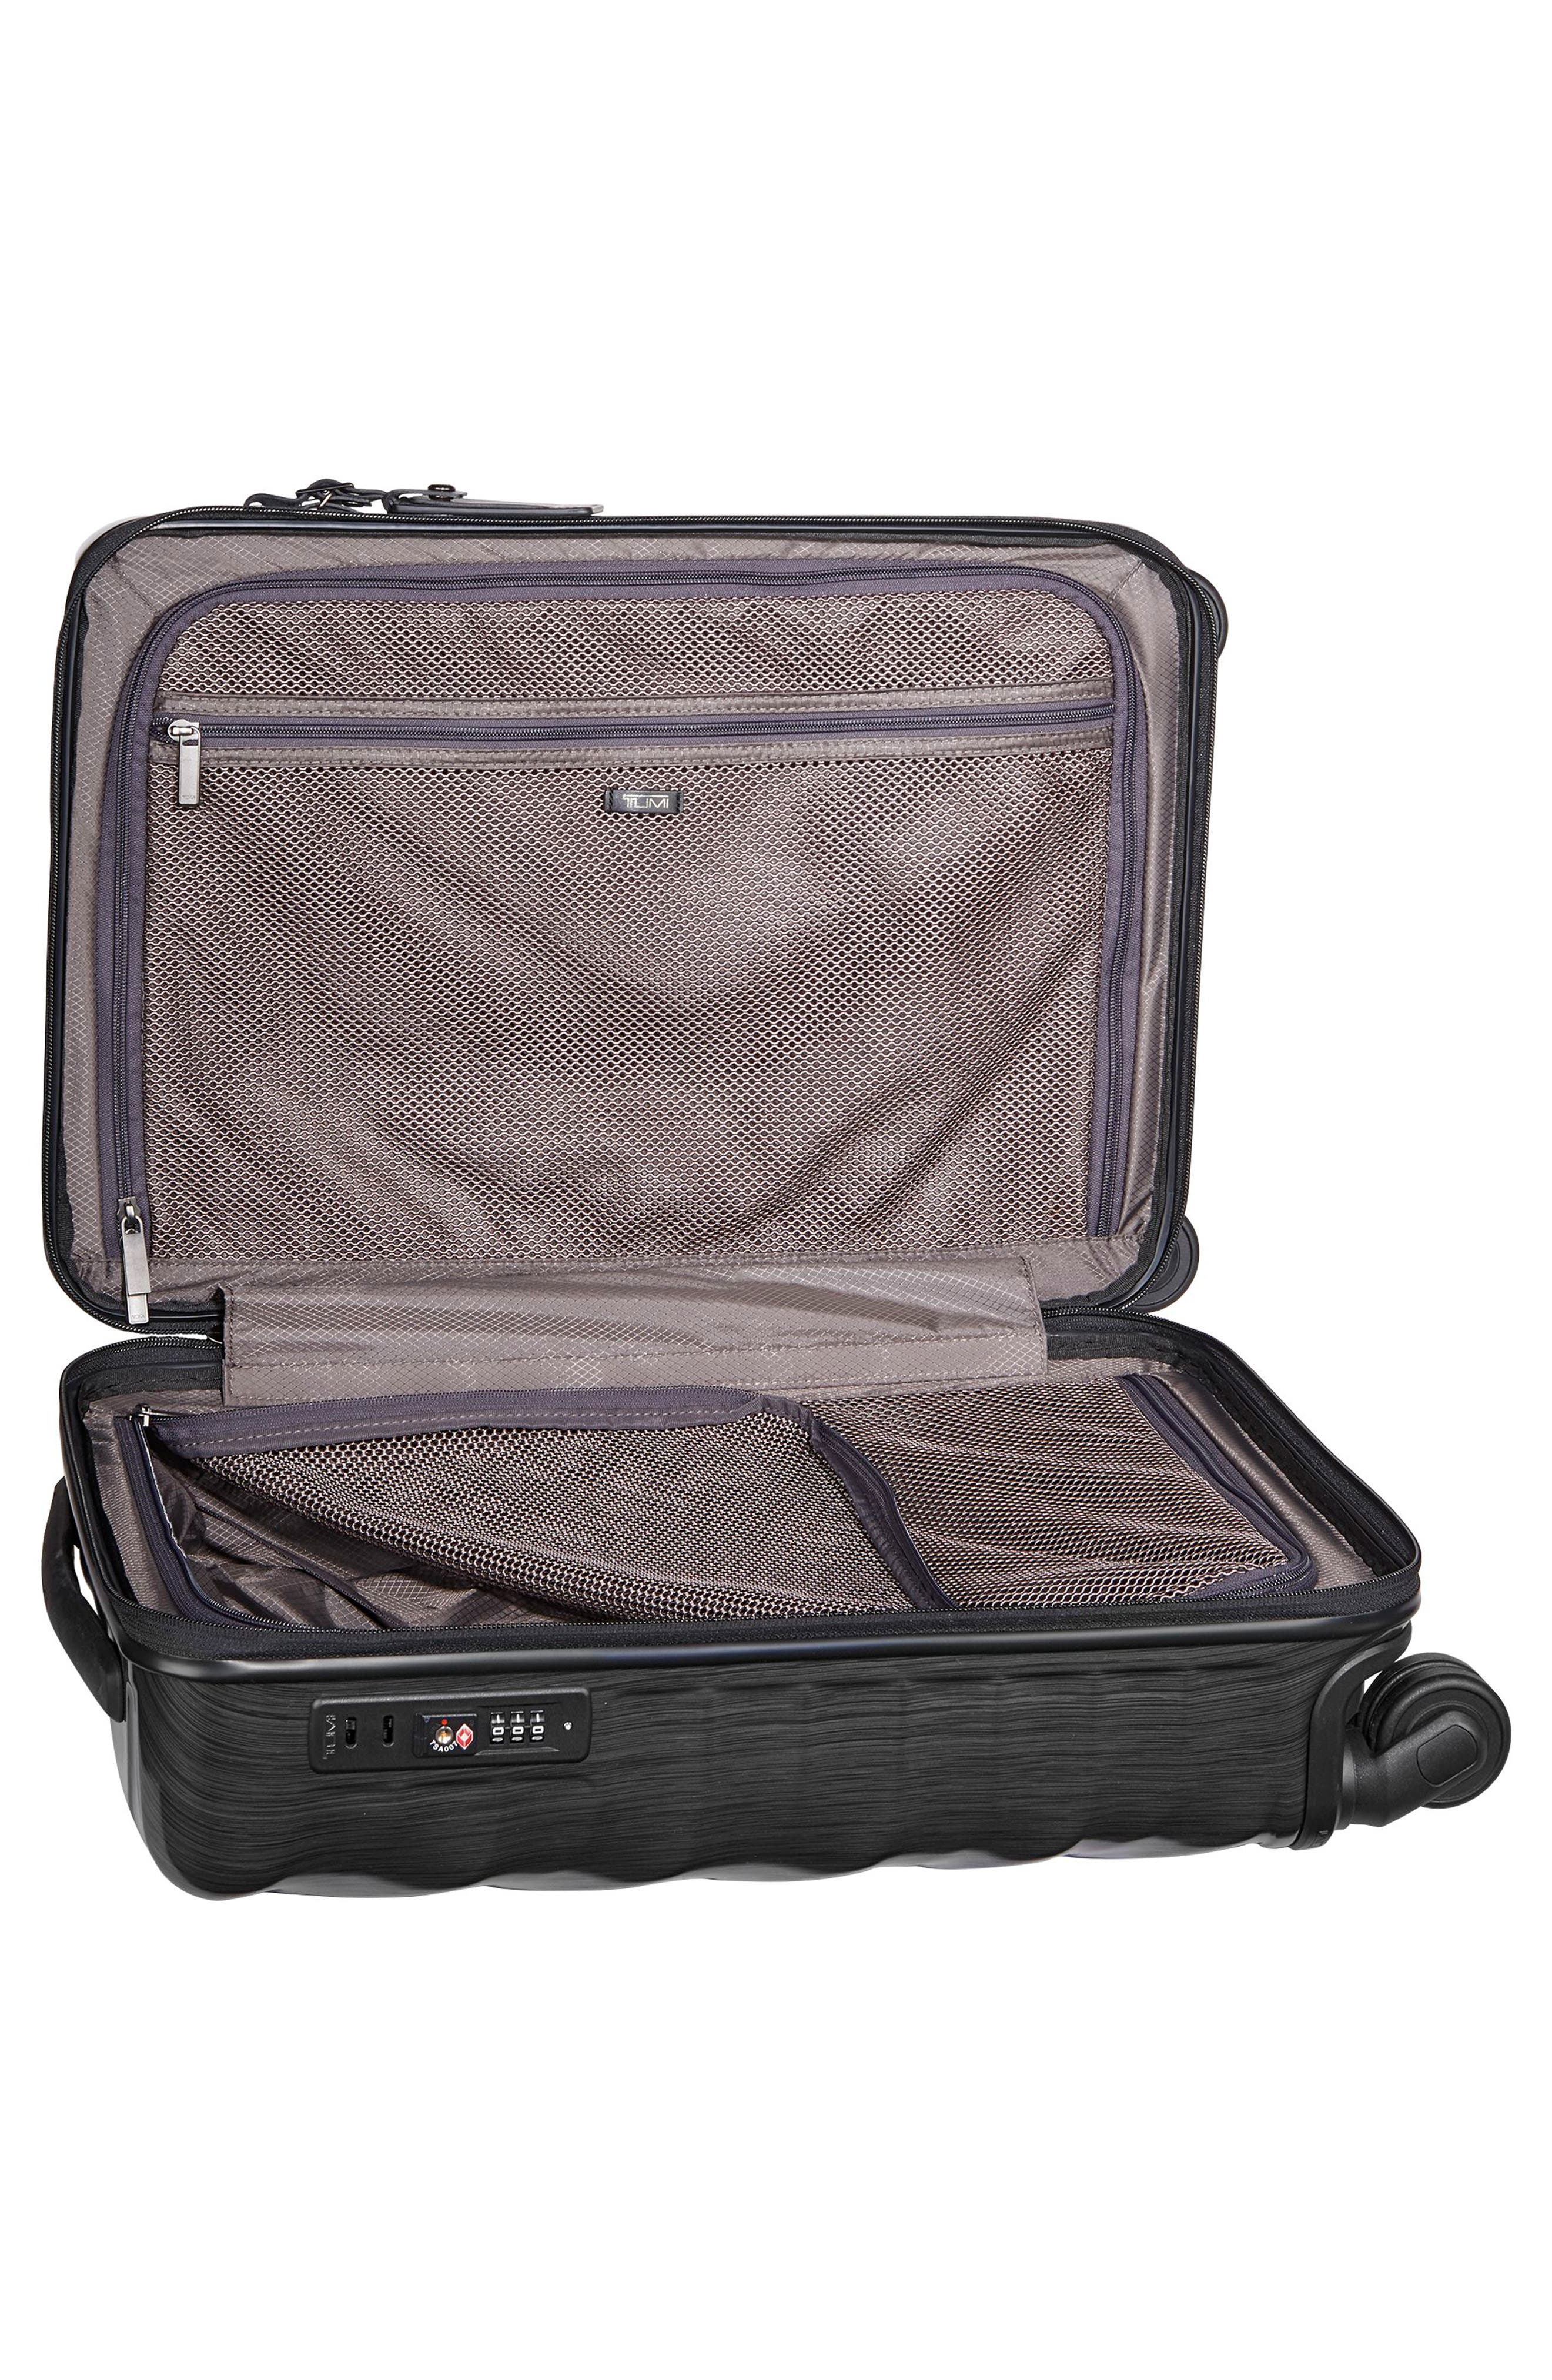 19 Degree 21-Inch International Wheeled Carry-On,                             Alternate thumbnail 2, color,                             001